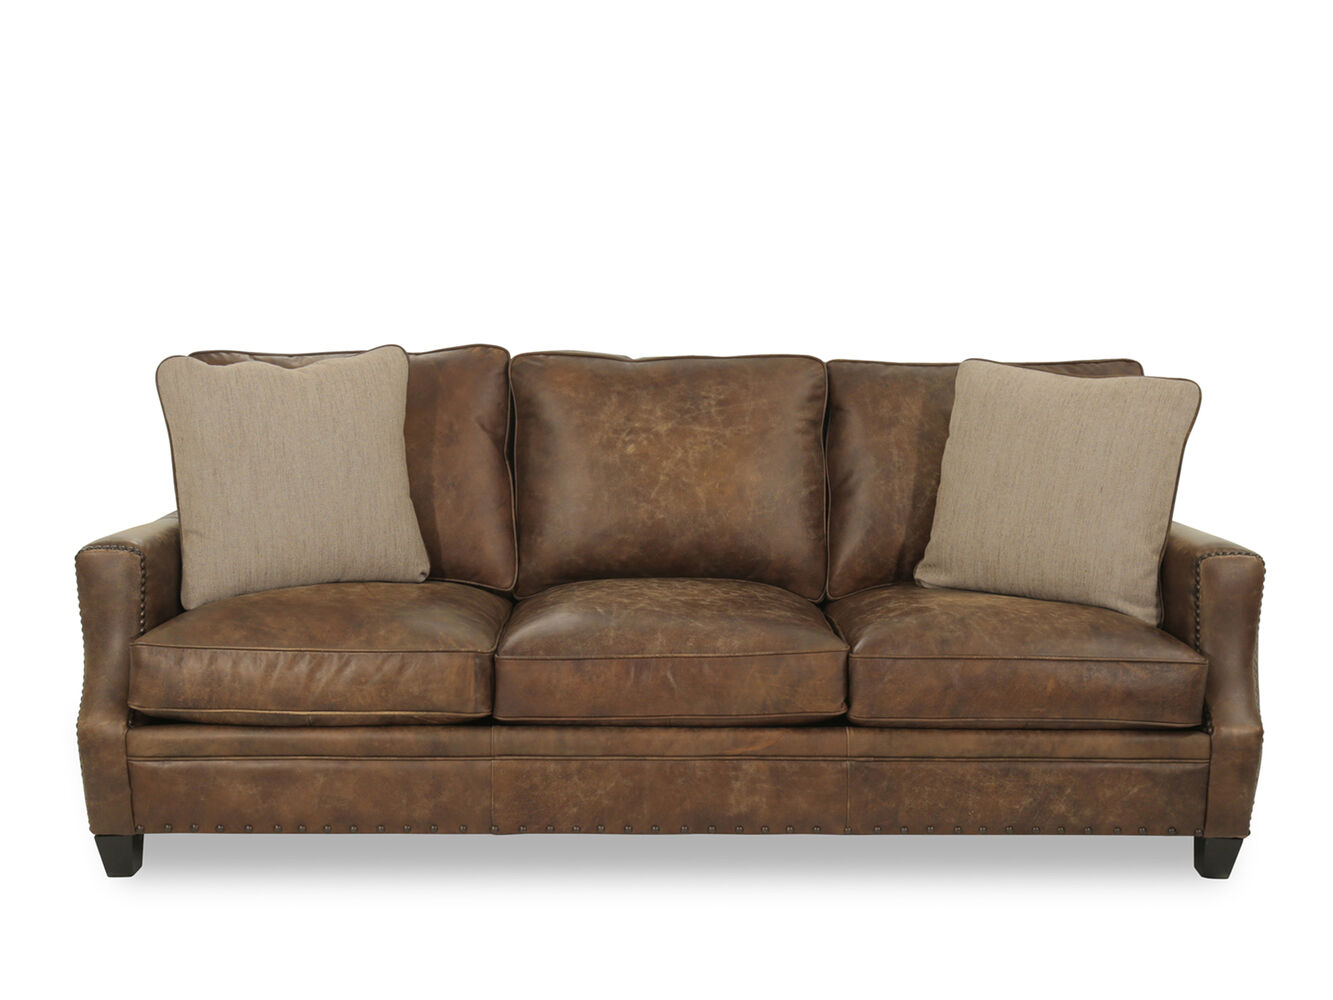 Nicoletti Leather Sofa Images Reviews